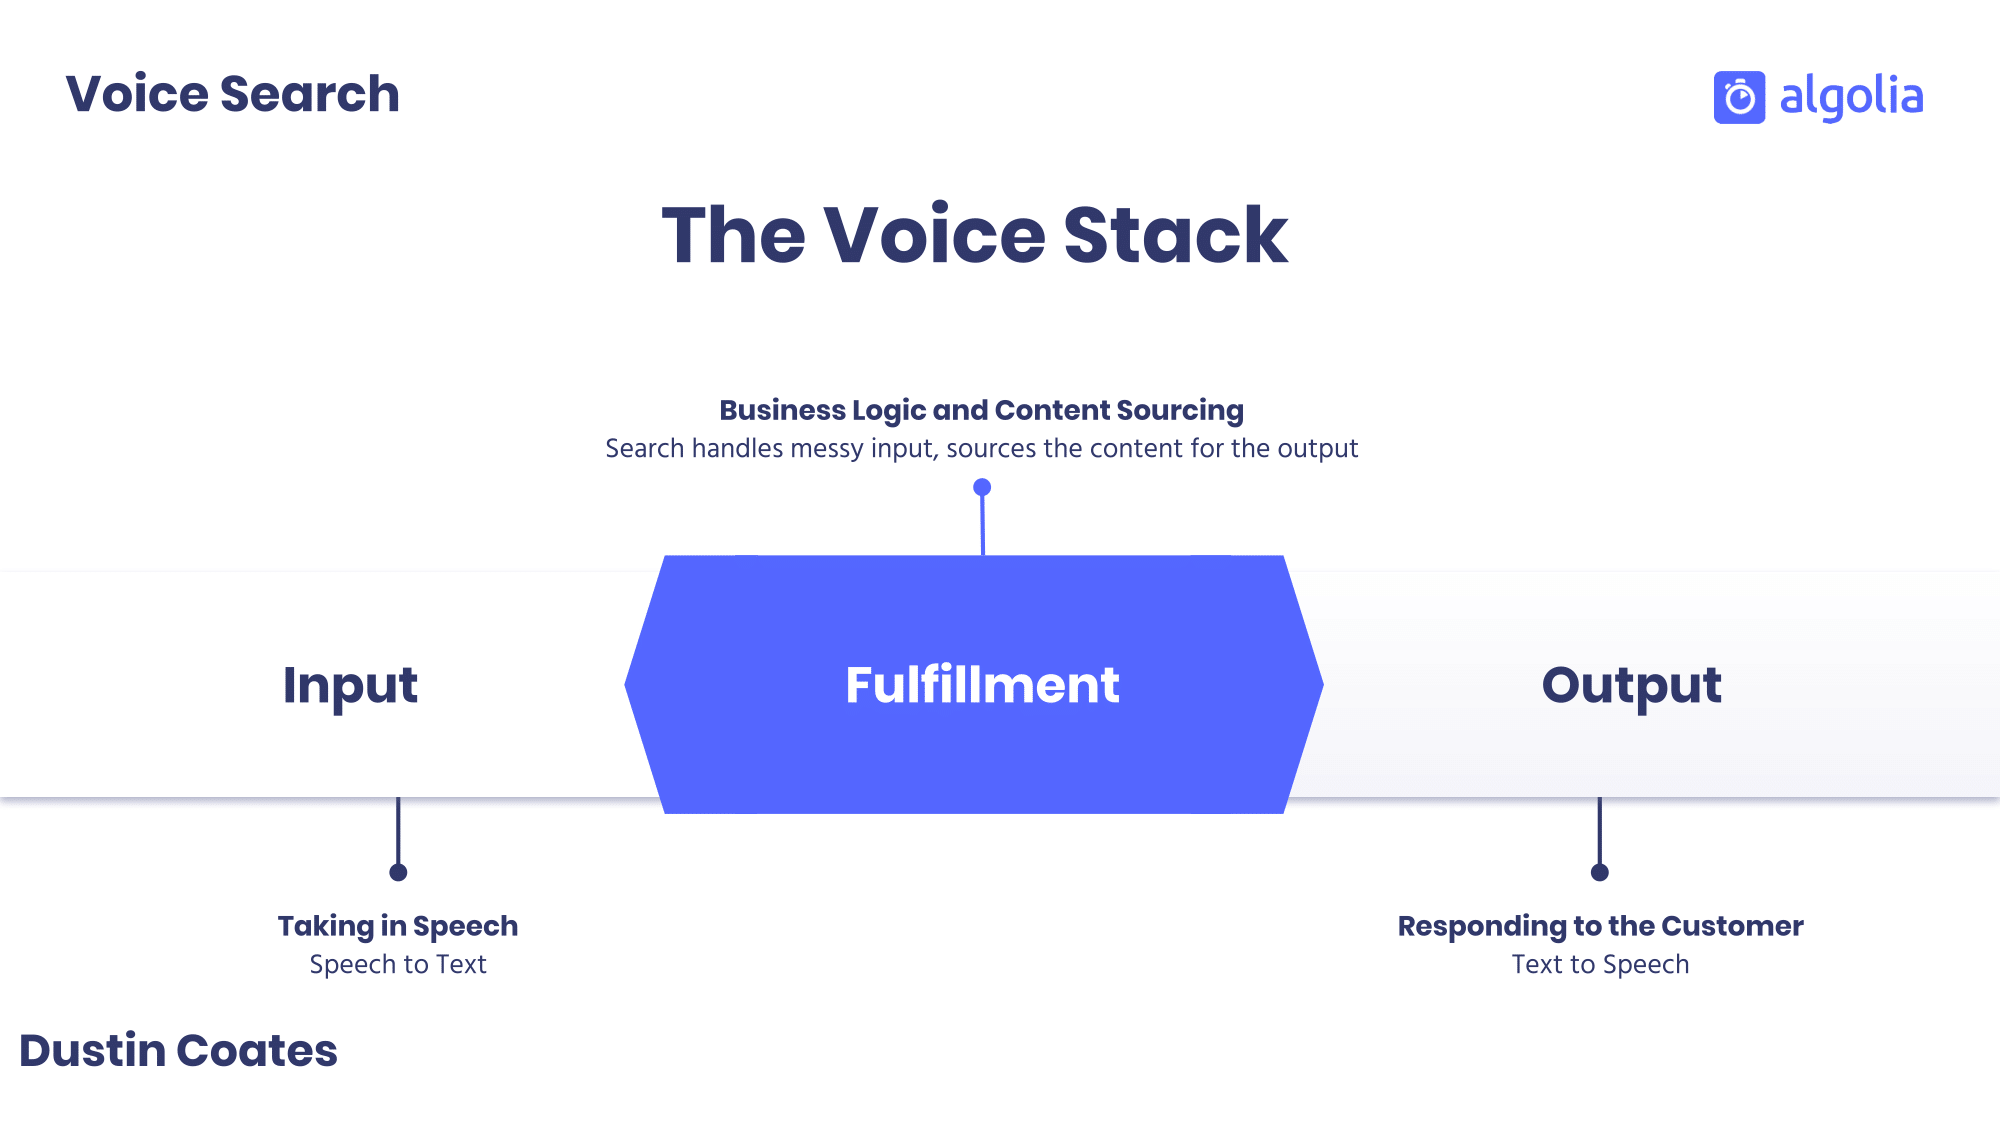 The voice stack: input, output, and fulfillment